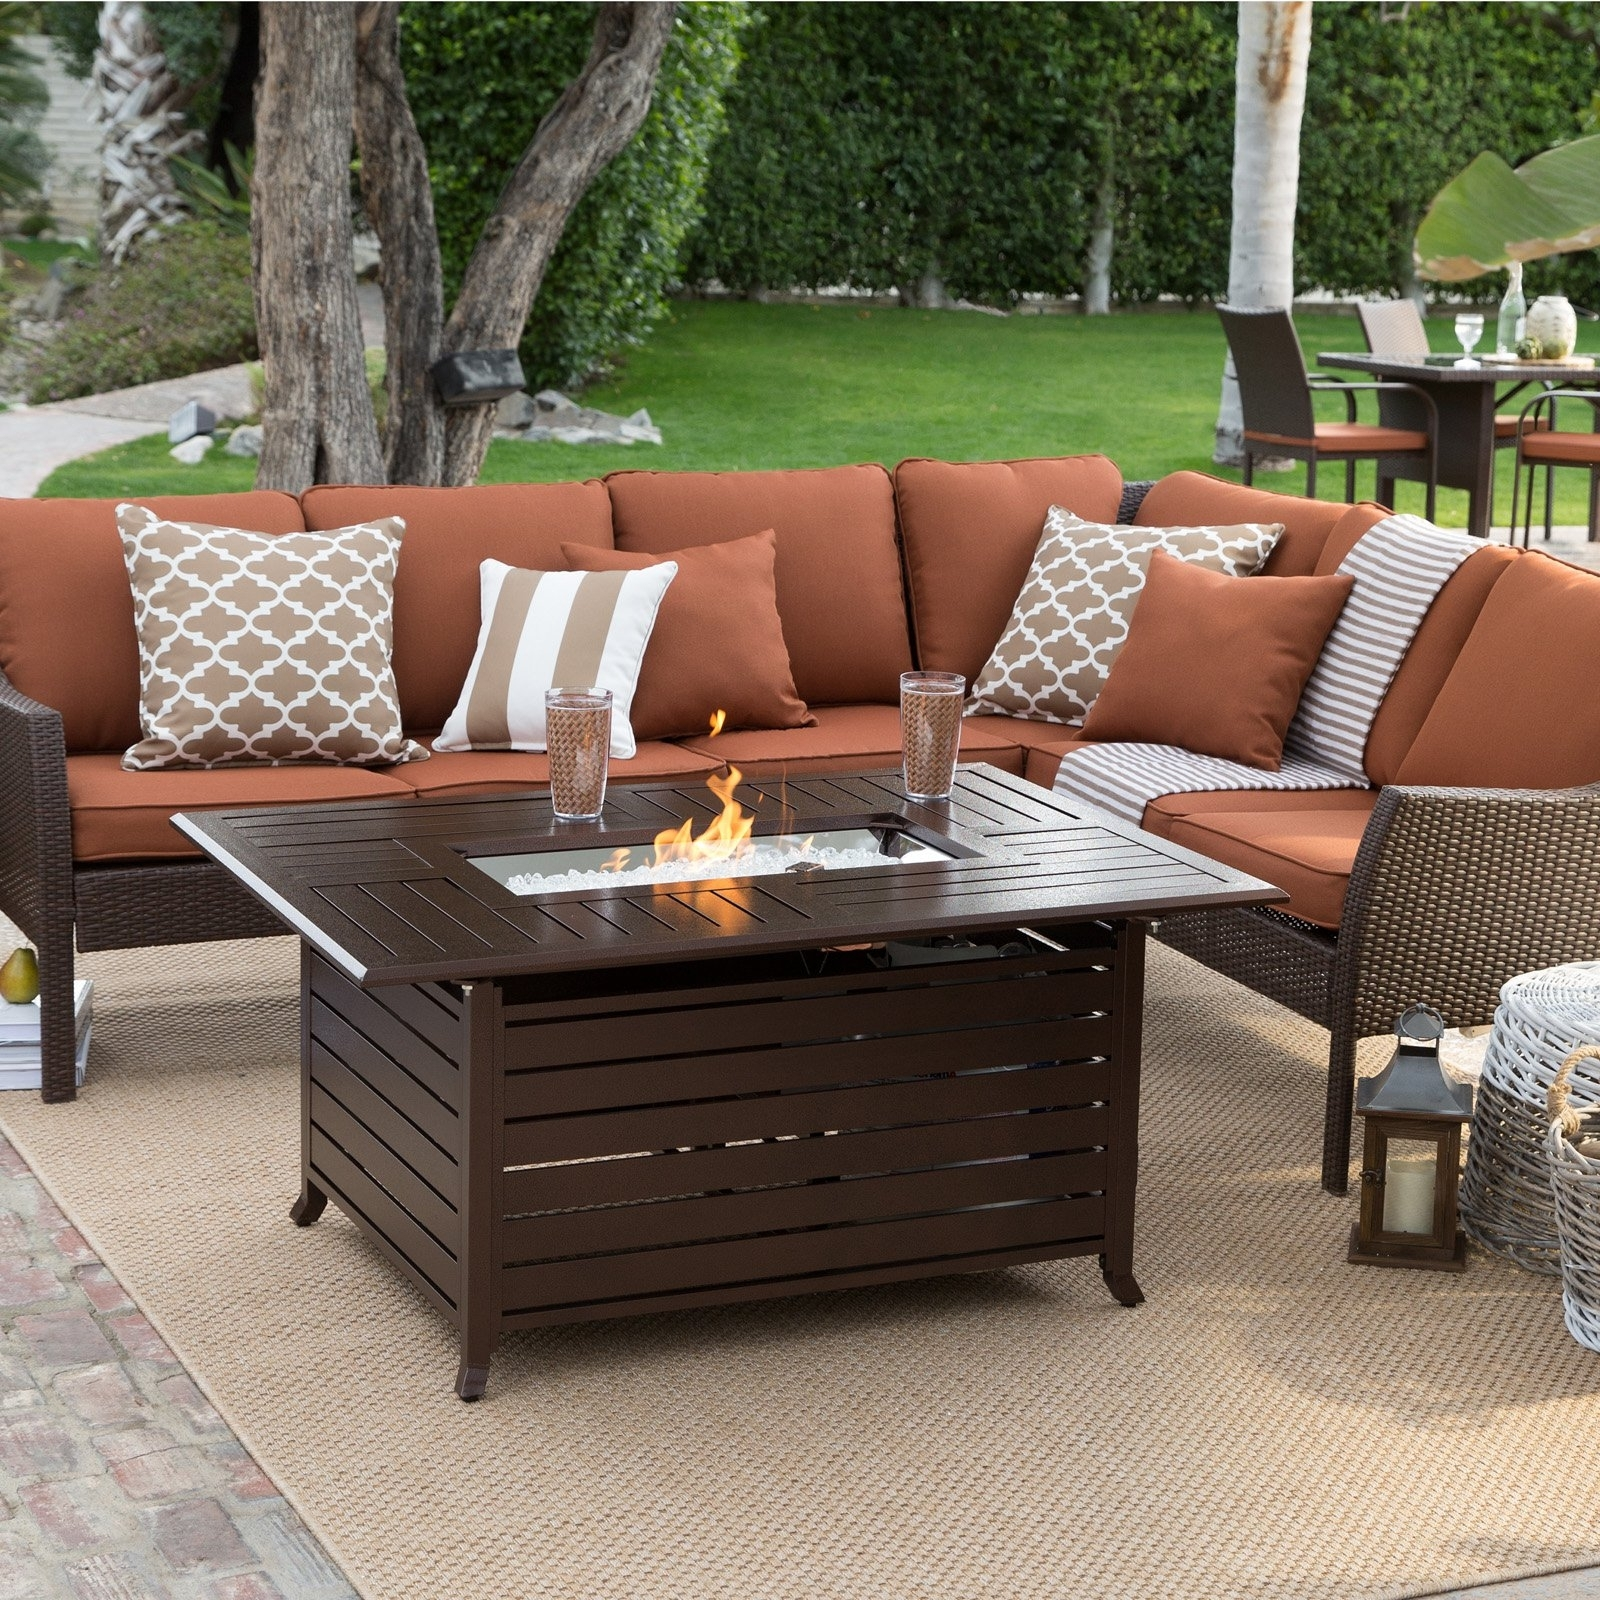 Newest Elegant Fire Pit Chairs For Sale Conversation Sets Deck Furniture Regarding Patio Conversation Sets With Fire Table (View 9 of 20)